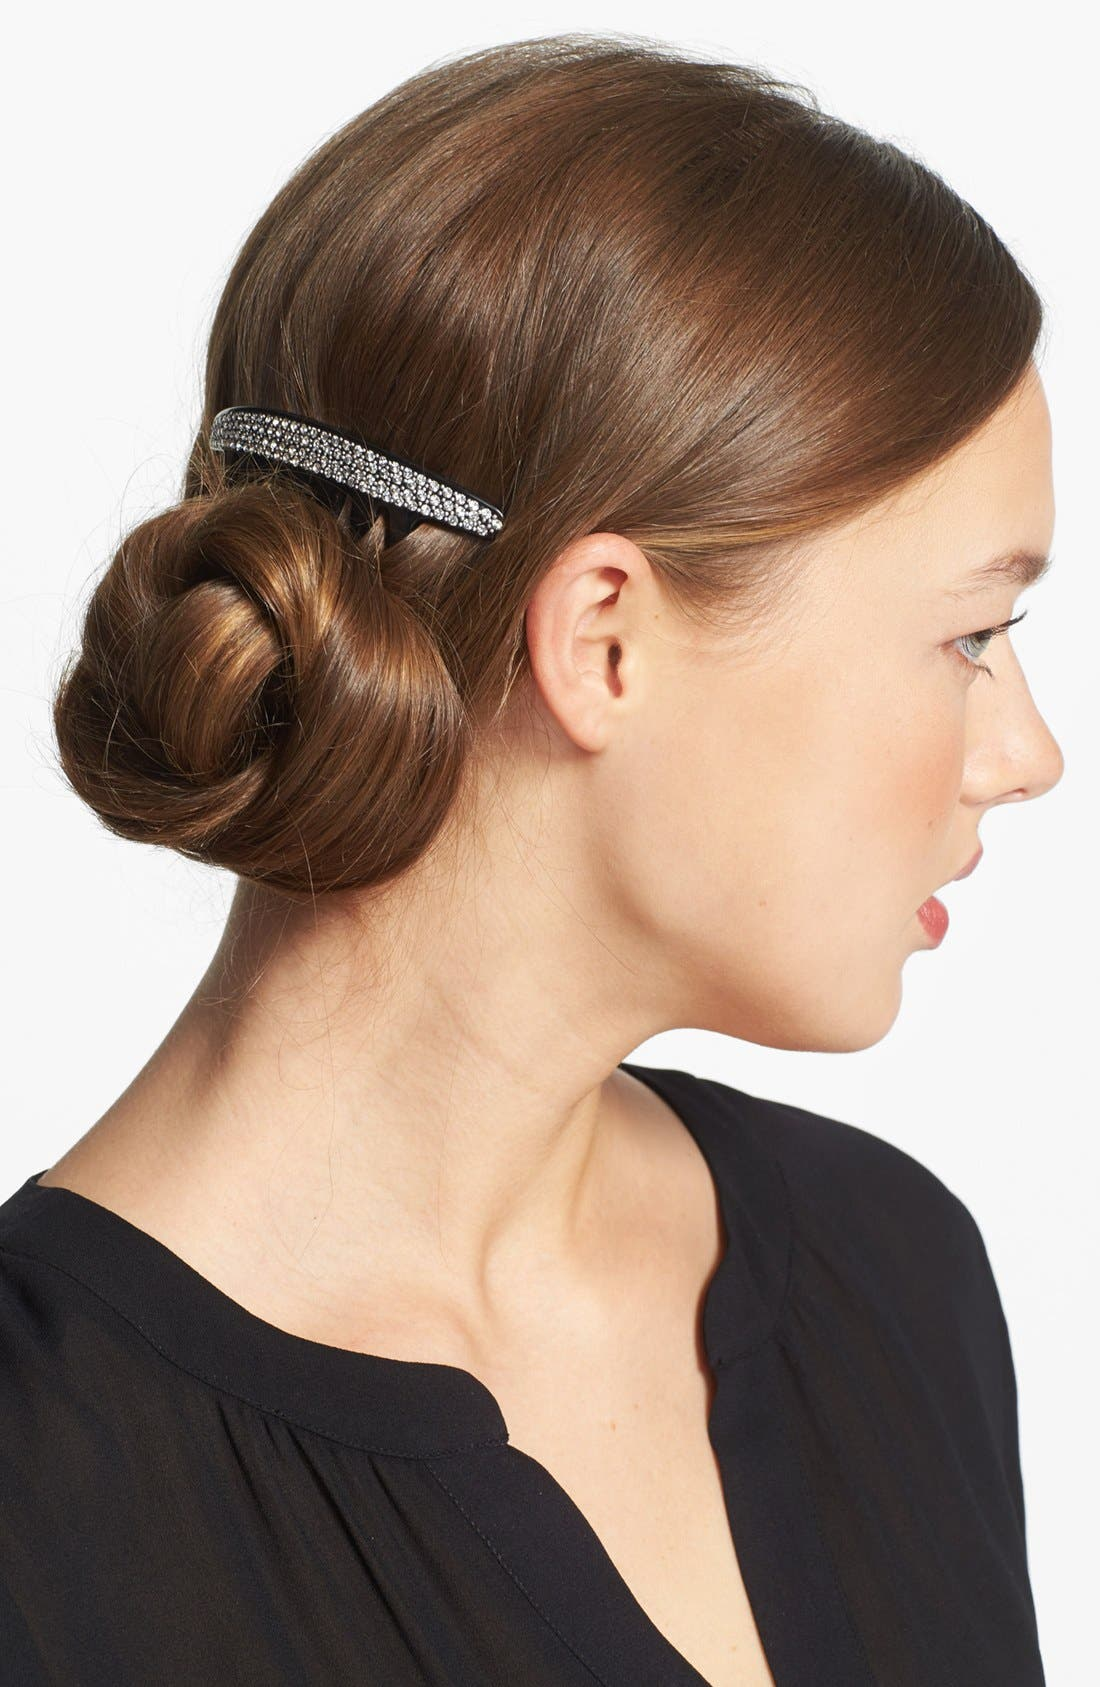 Alternate Image 1 Selected - France Luxe 'Swarovski Pavé' French Twist Comb